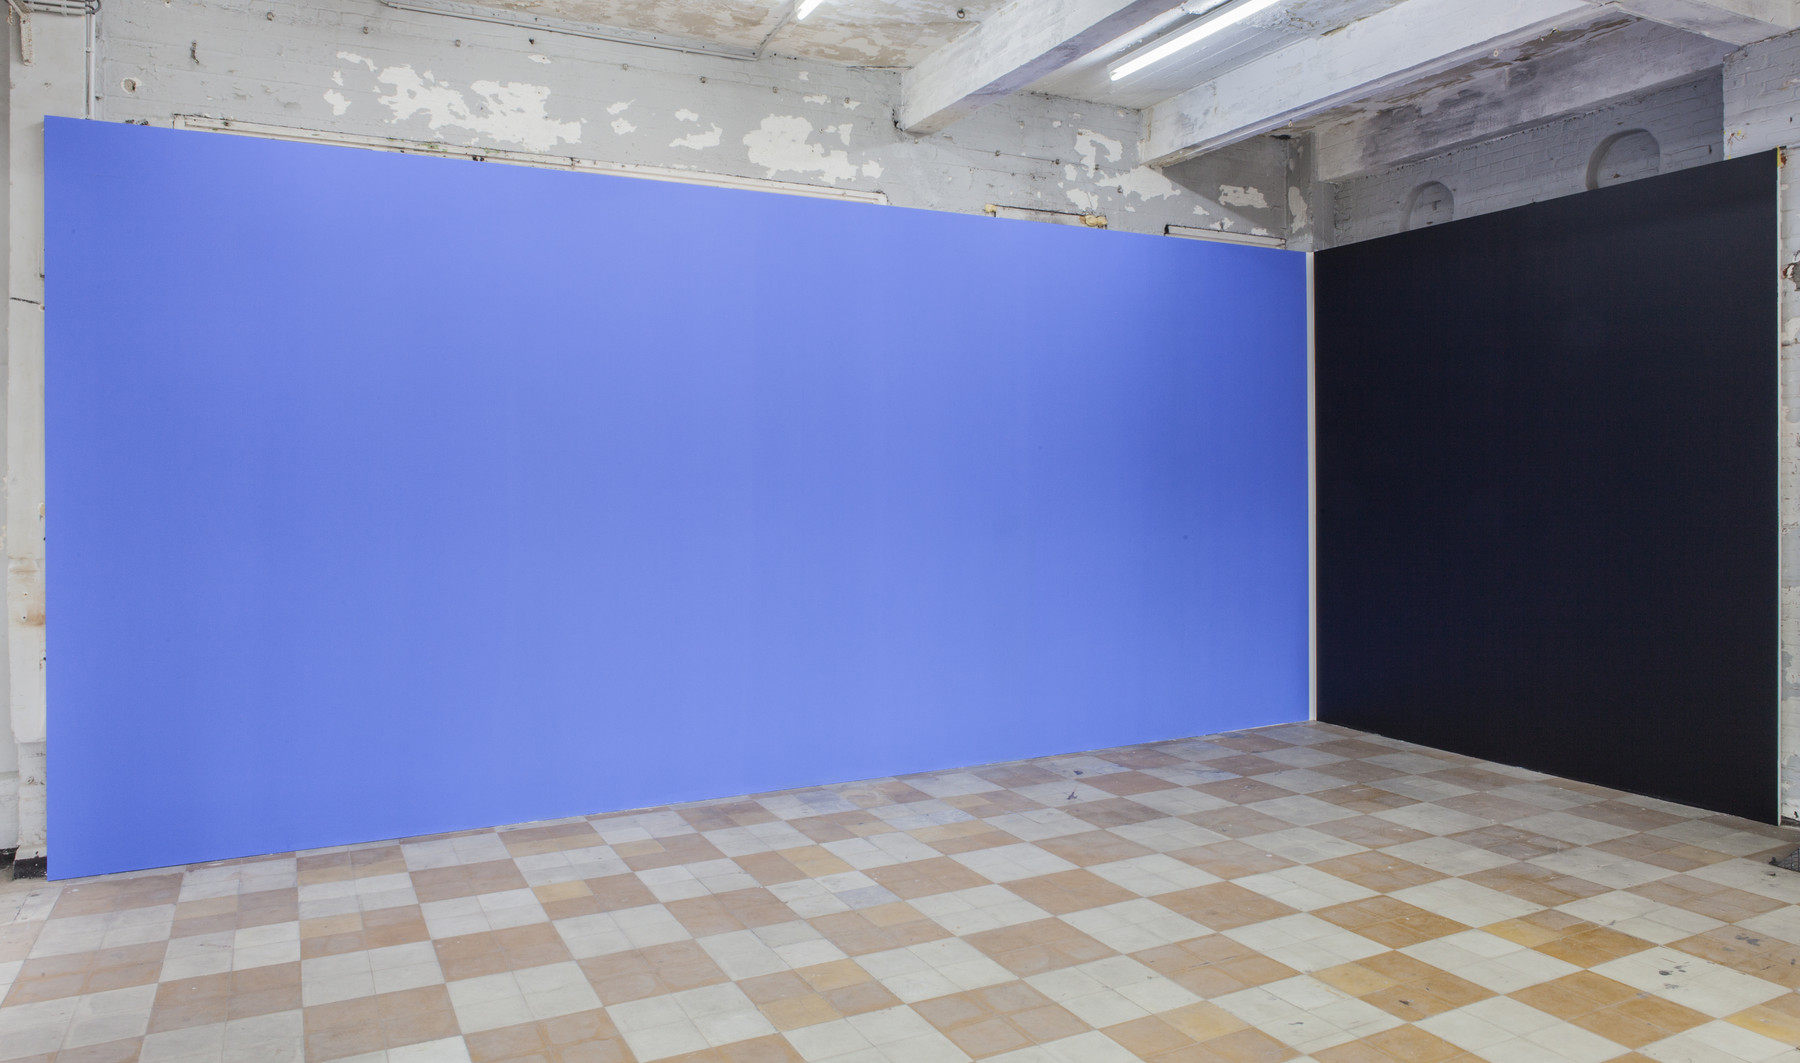 Philippe Van Snick, 'Dag Nacht', 1987, in 'The Corner Show', installation view, Extra City Kunsthal, 2015 © We Document Art